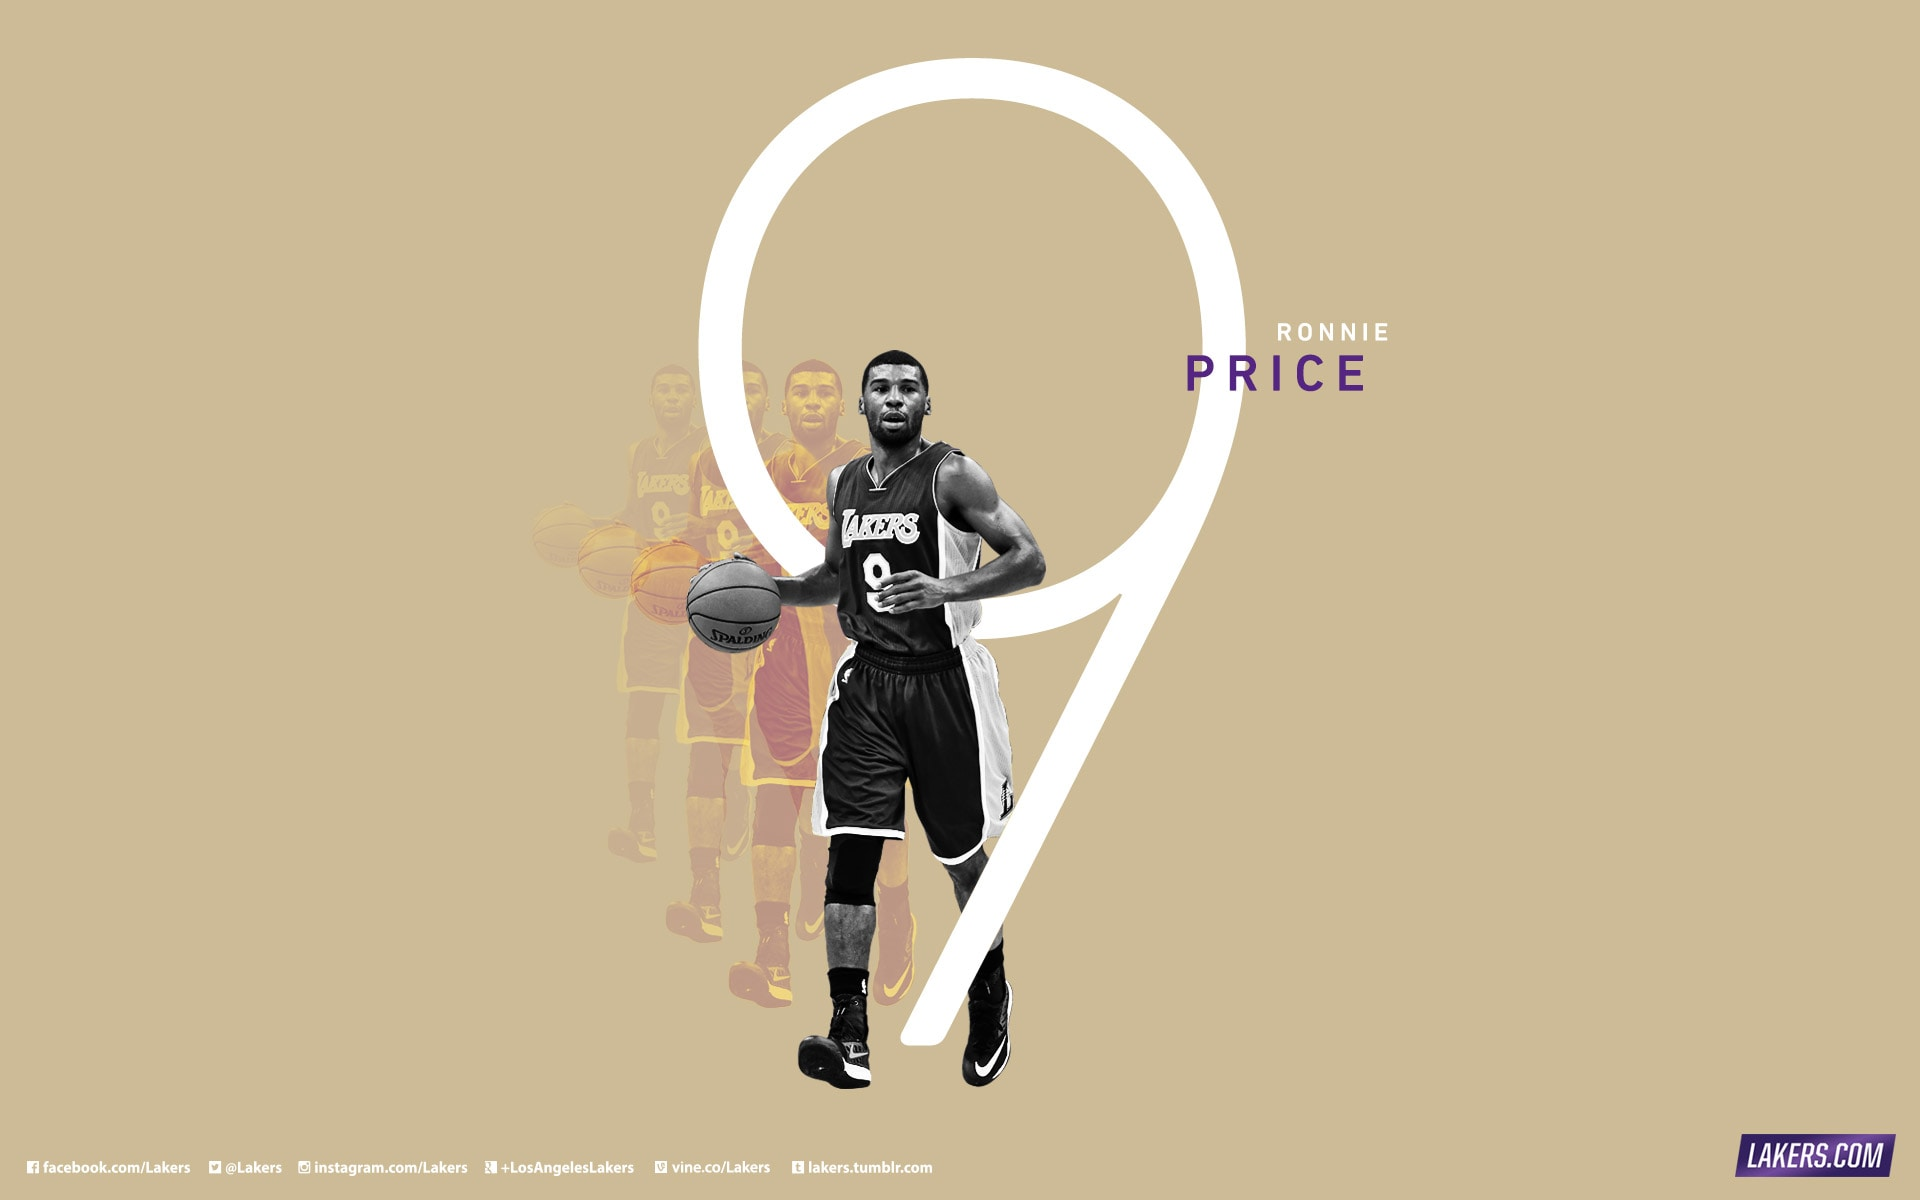 Ronnie Price Player Wallpaper